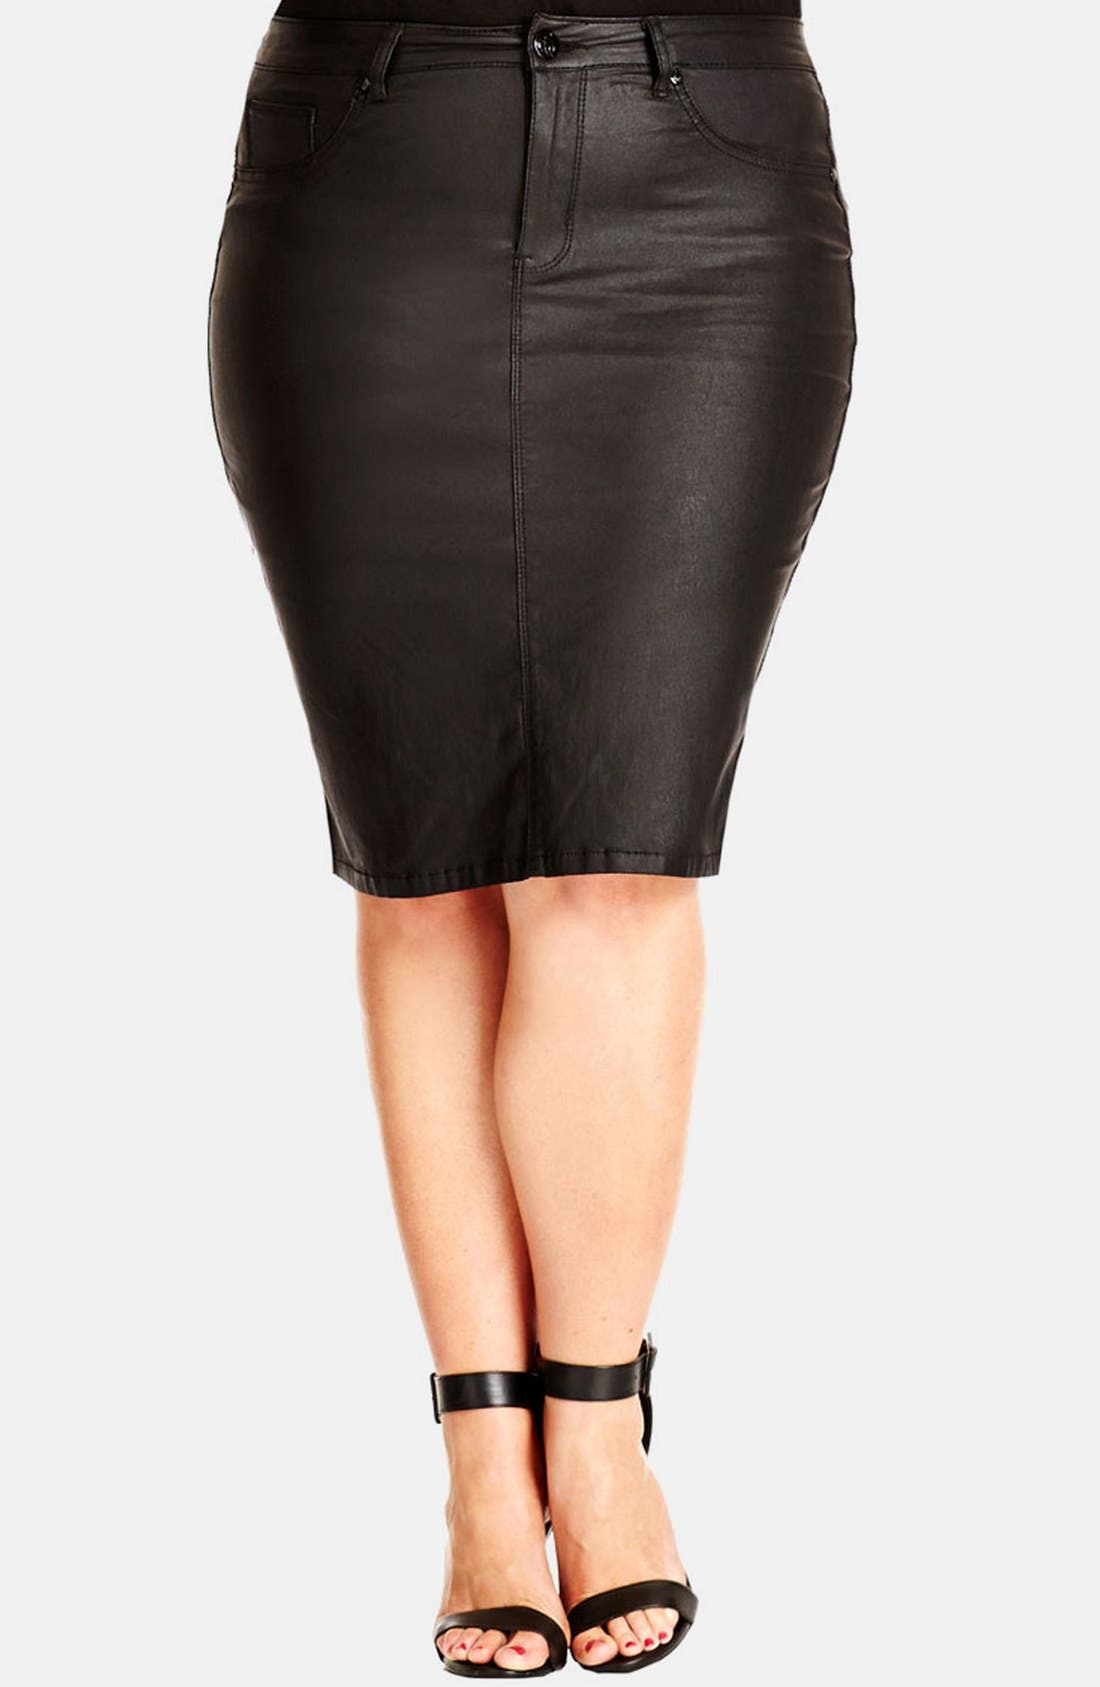 Main Image - City Chic 'Wet Look' Pencil Skirt (Plus Size)